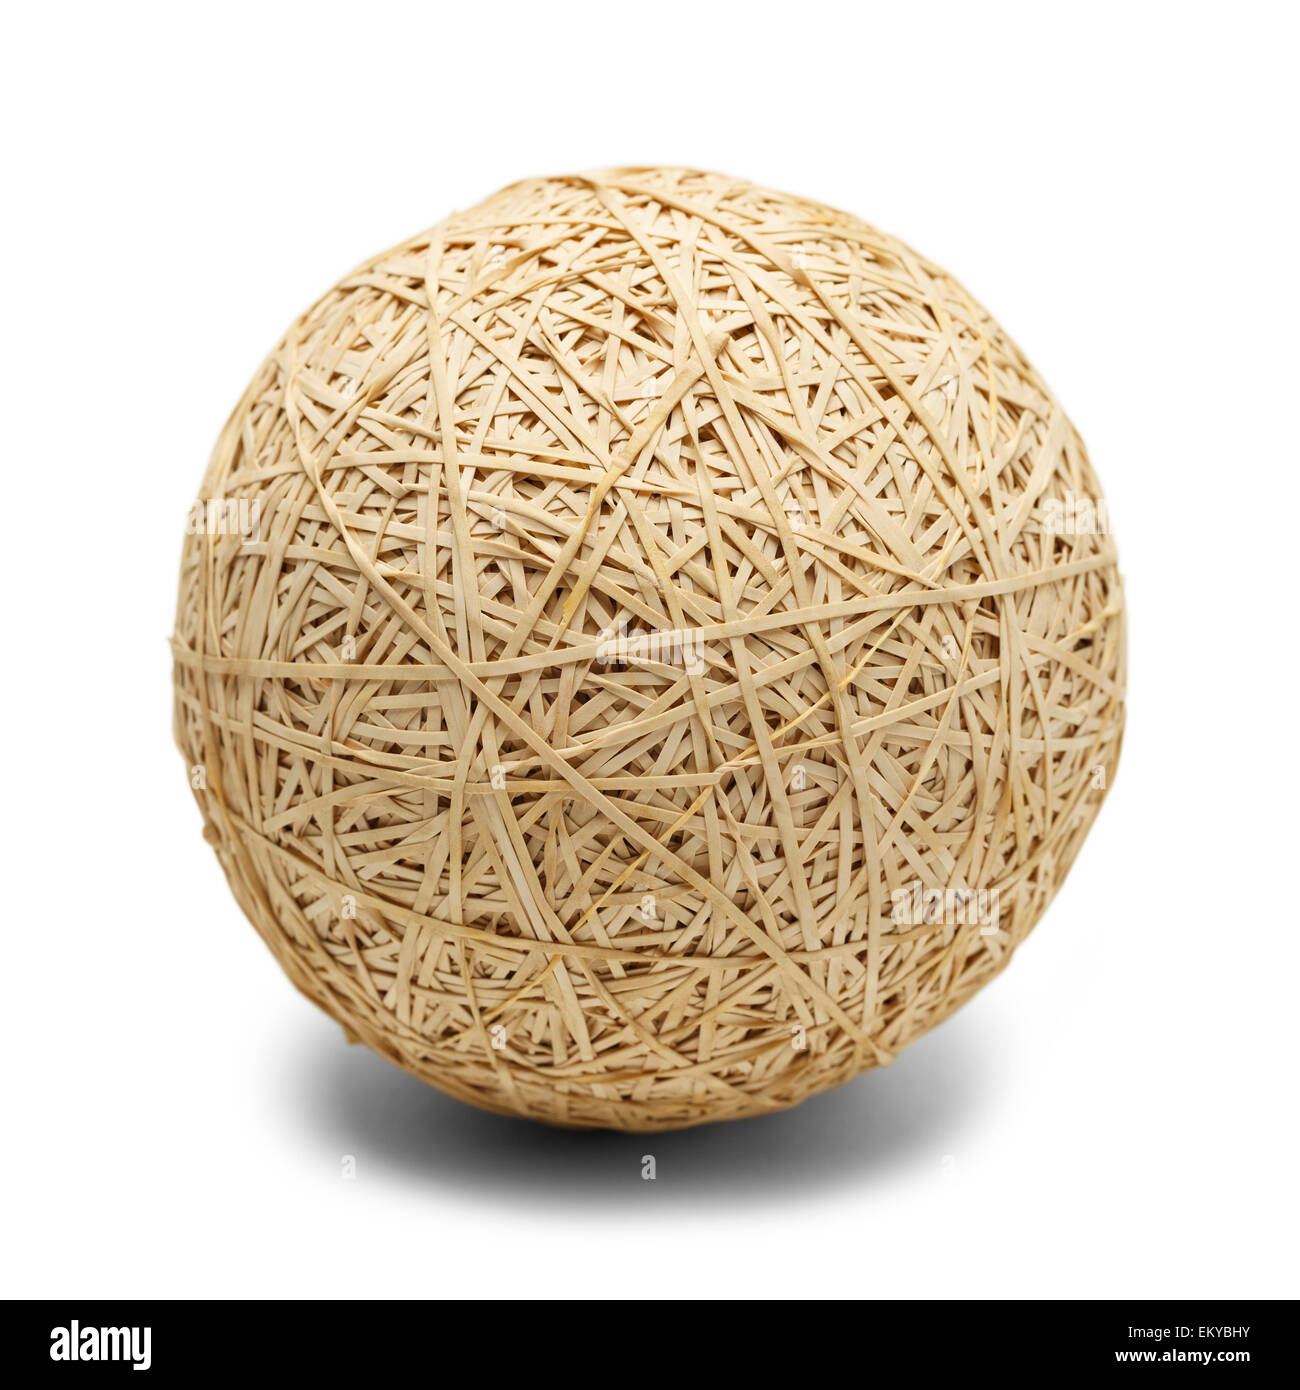 Big Brown Ball of Rubber Bands Isolated on White Background. - Stock Image